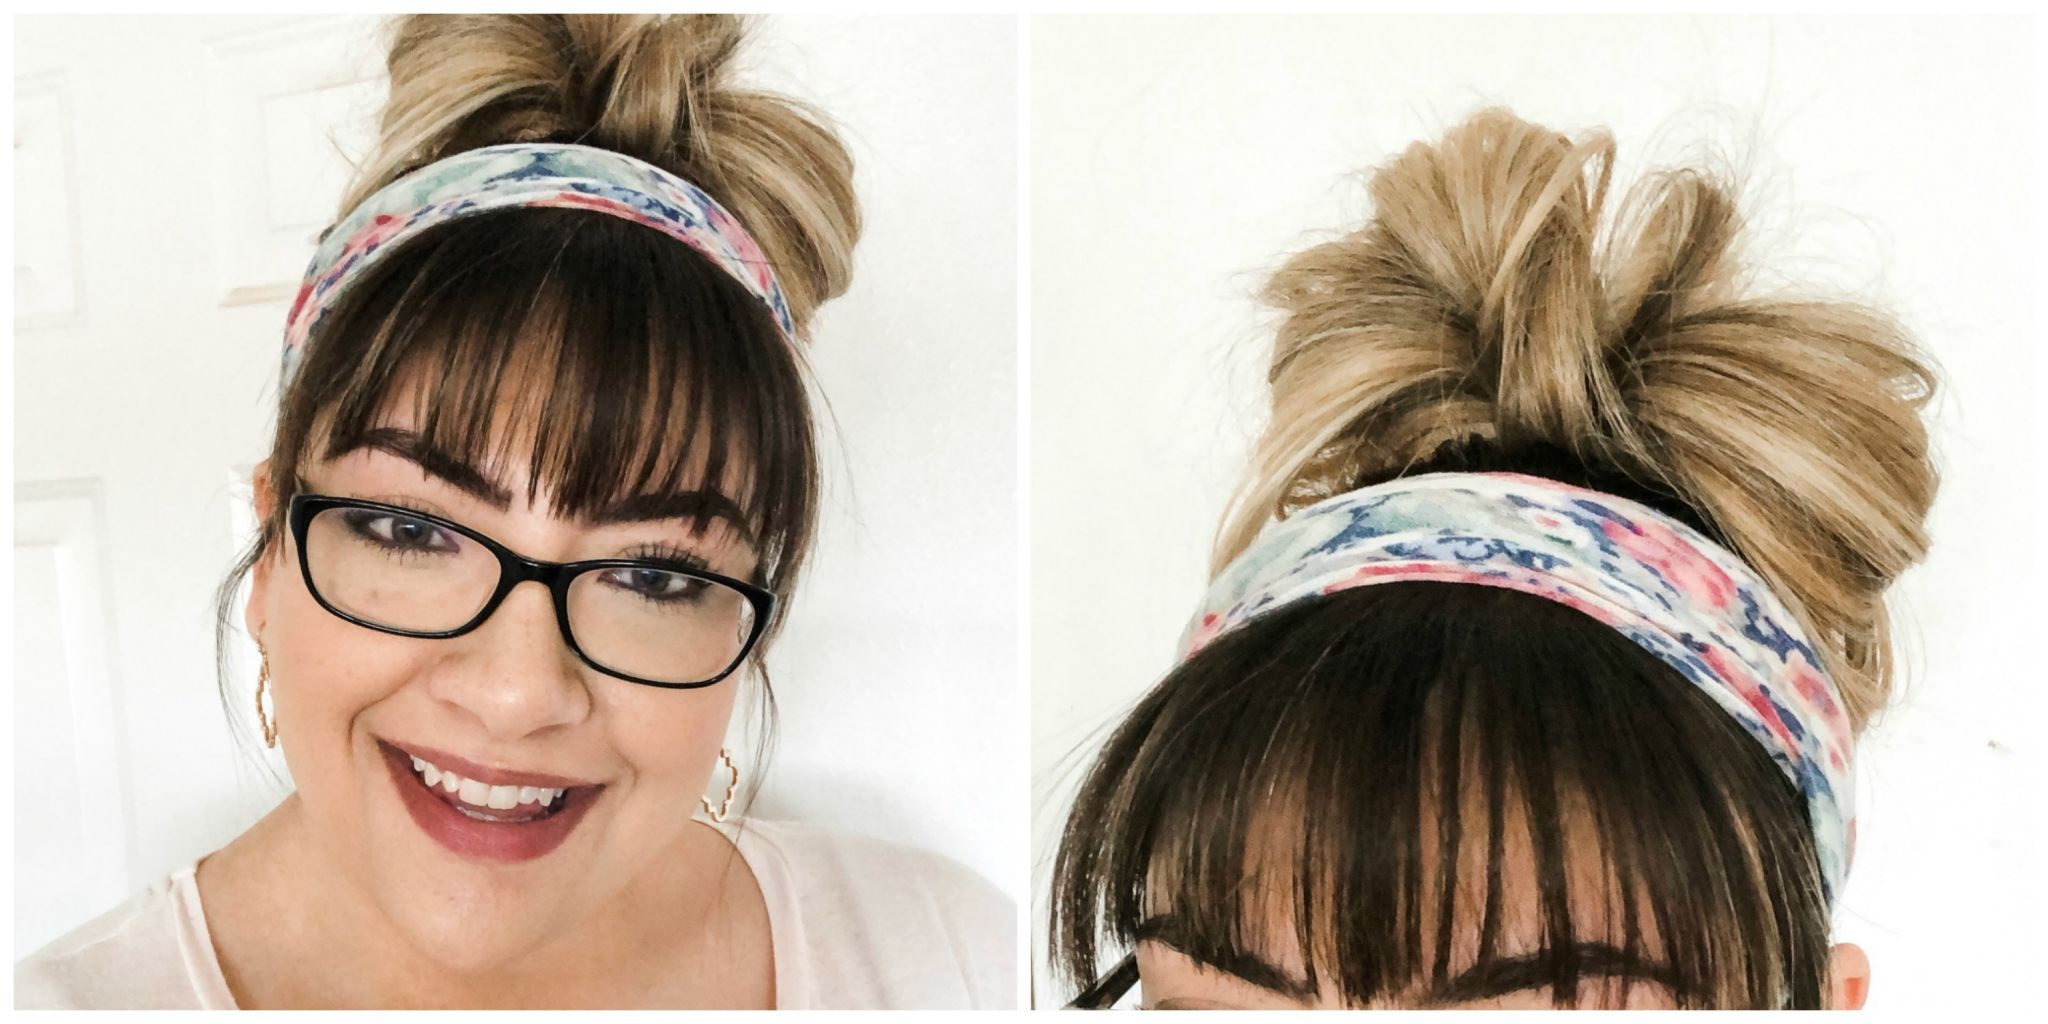 Hair Accessories To Try // Trend To Try // Spring Fashion // Hair Accessories For Women // Hairstyles for Headbands | Beauty With Lily